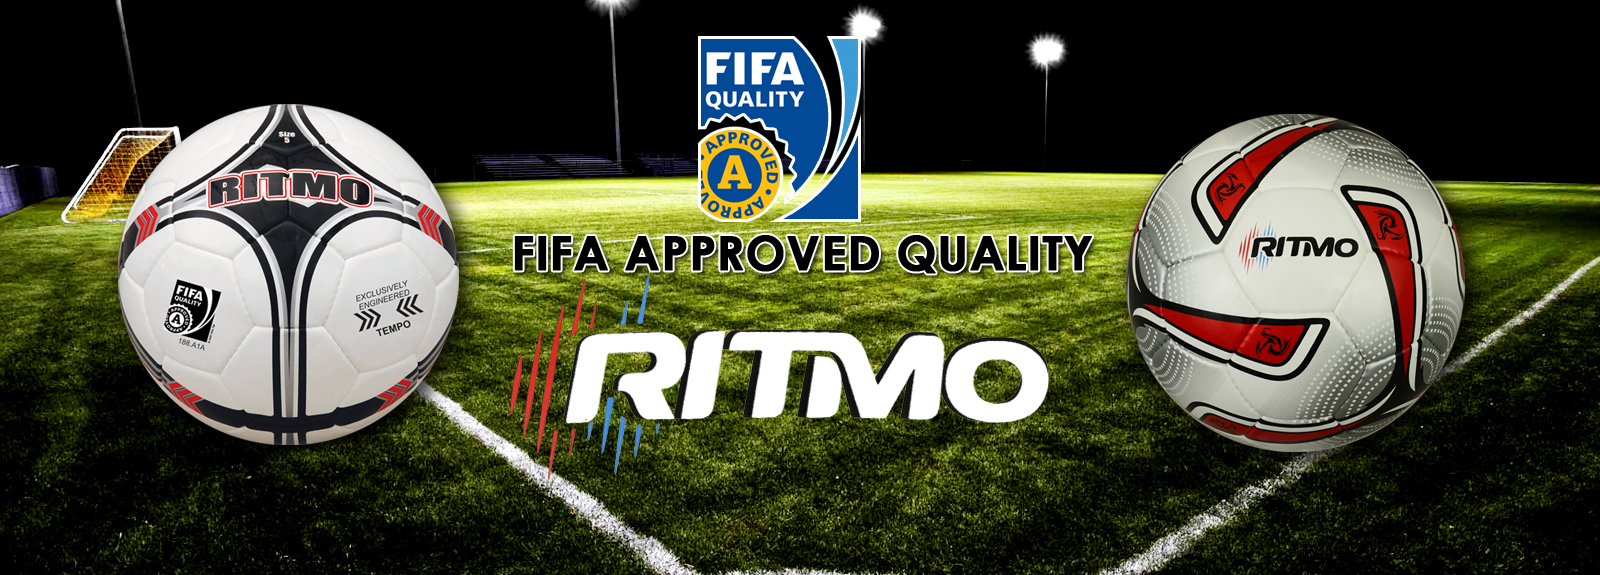 FIFA APPROVED QUALITY